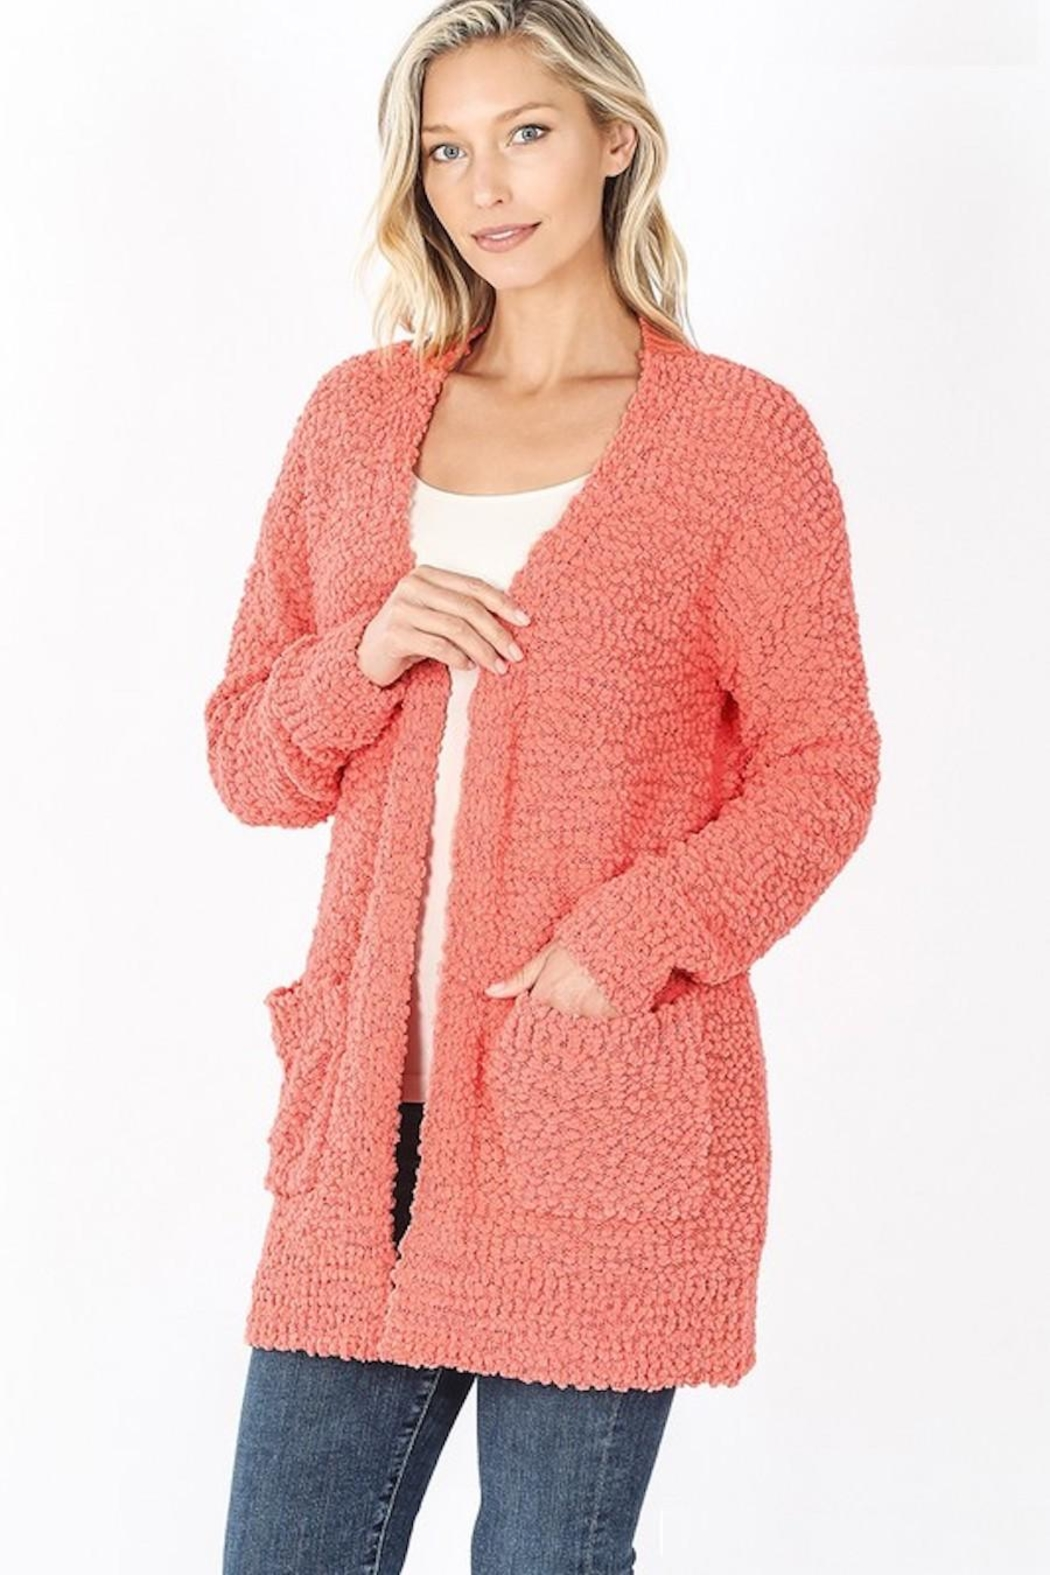 Zenana Outfitters Popcorn Pocket Cardigan - Front Cropped Image